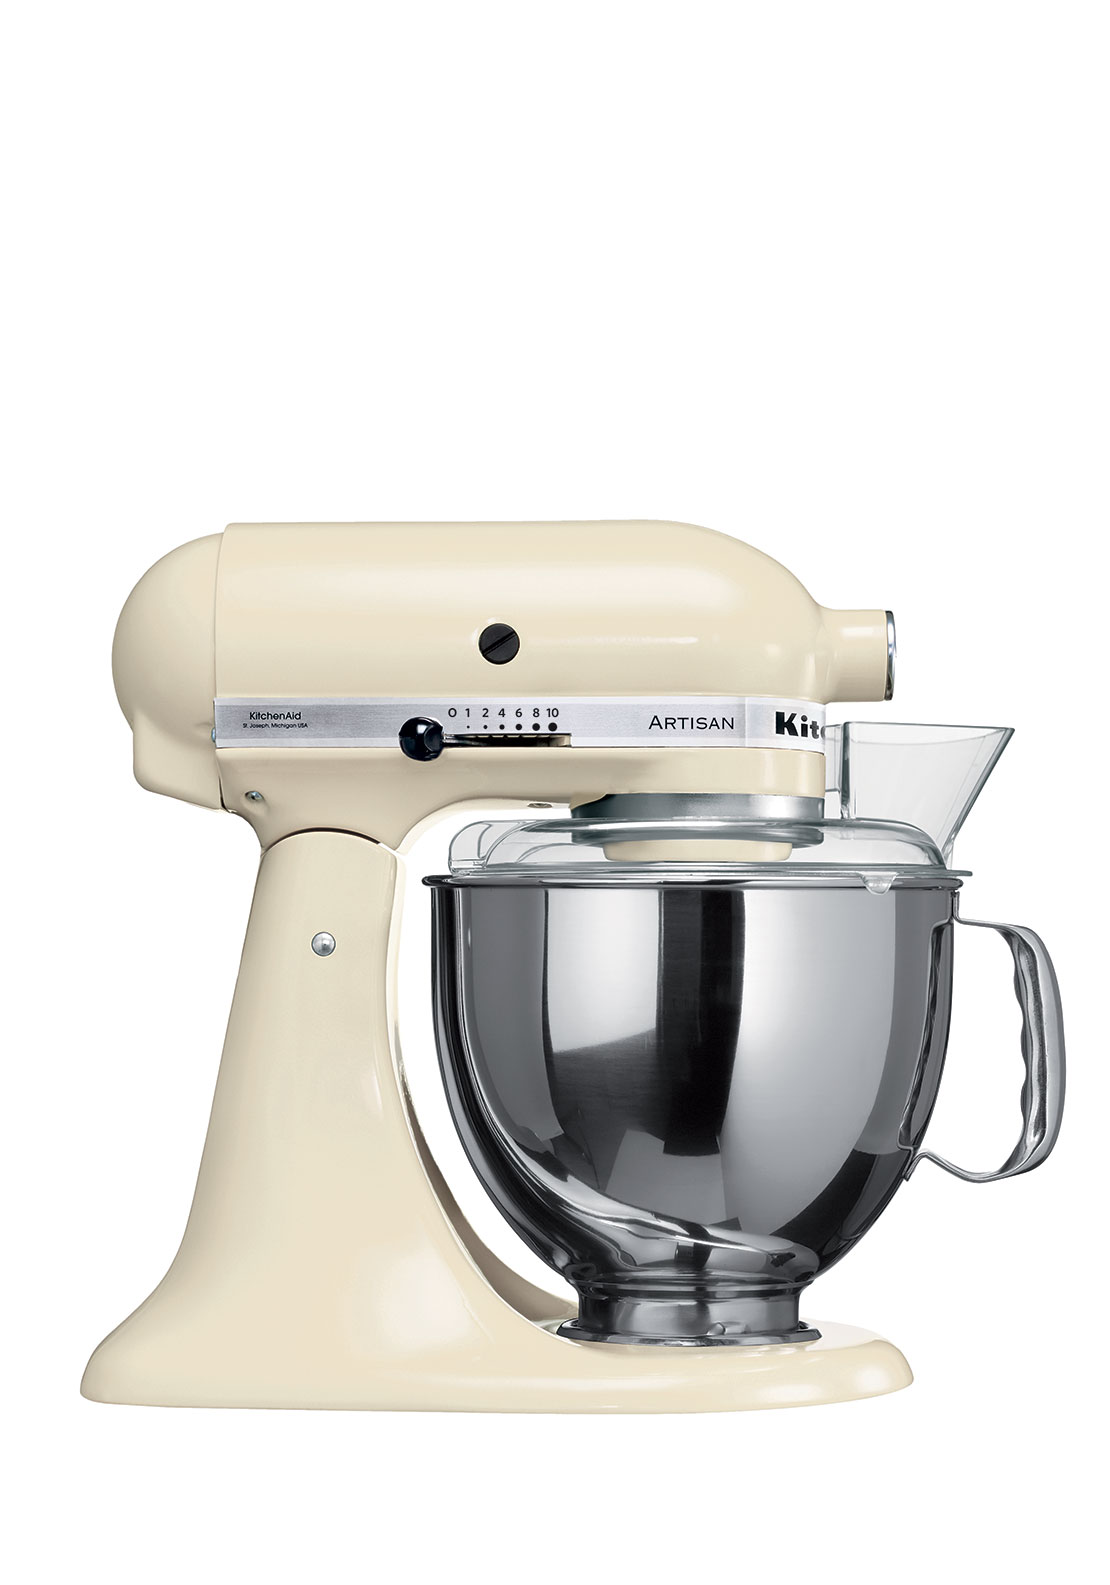 KitchenAid Artisan Tilt Head Stand Mixer, Almond Cream 4.8L